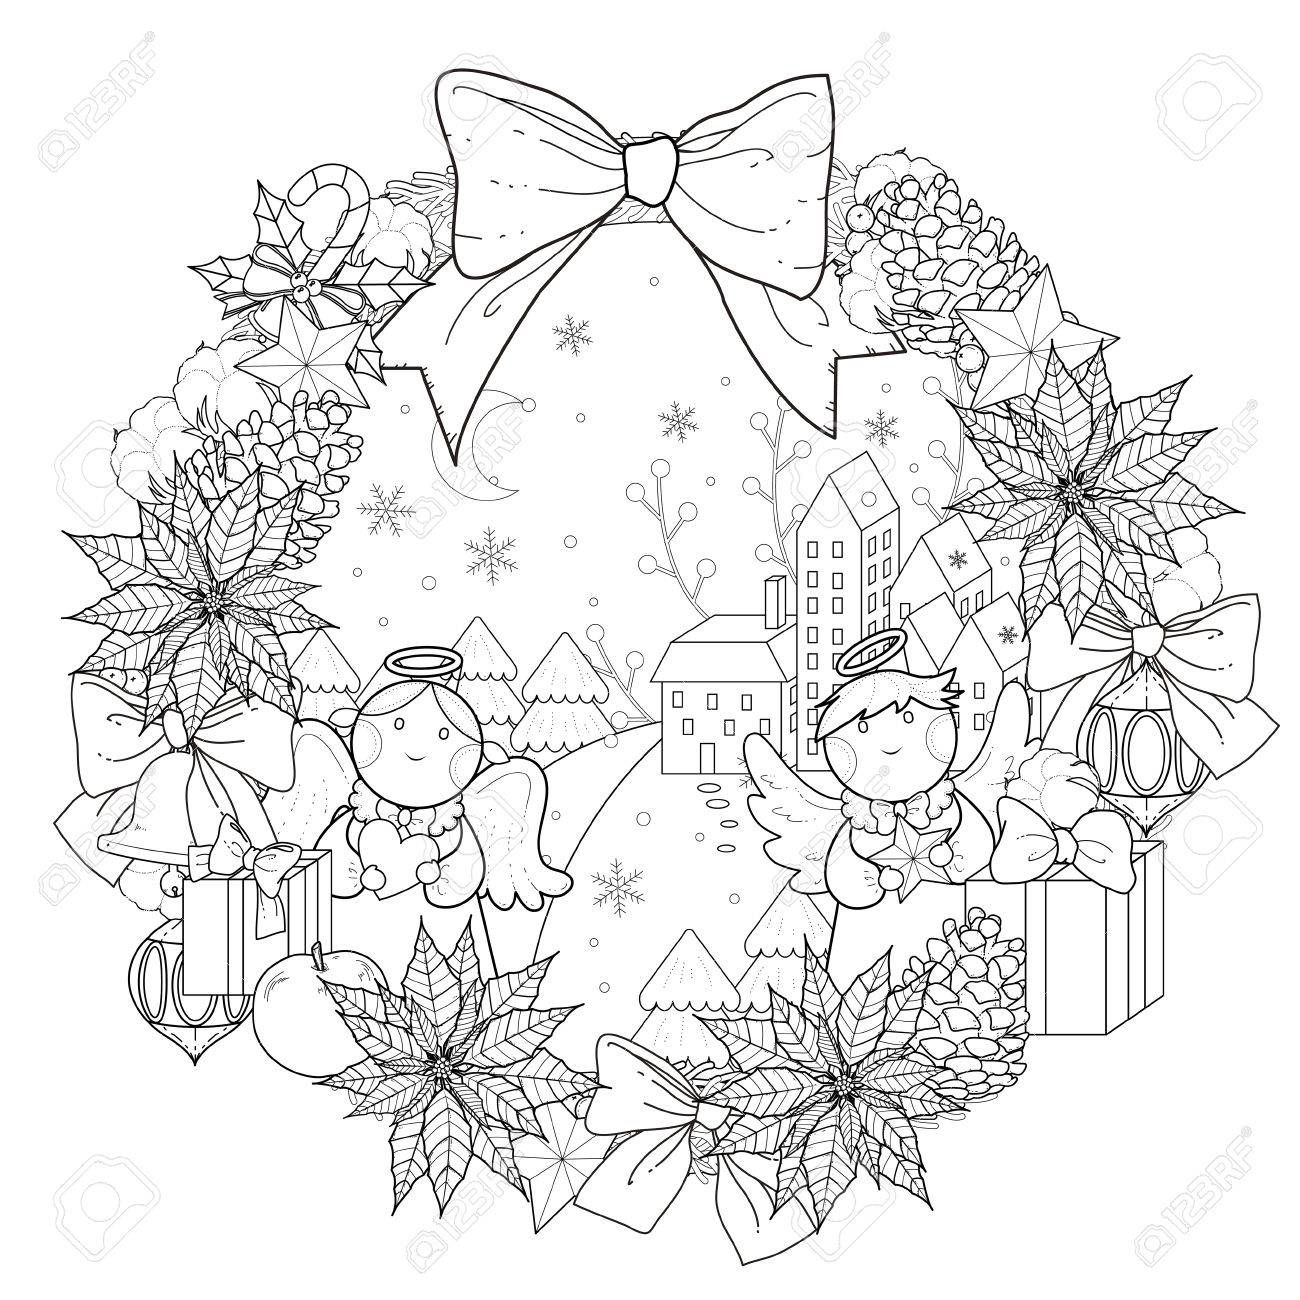 Christmas Wreath Coloring Pages With Page Decorations In Exquisite Line